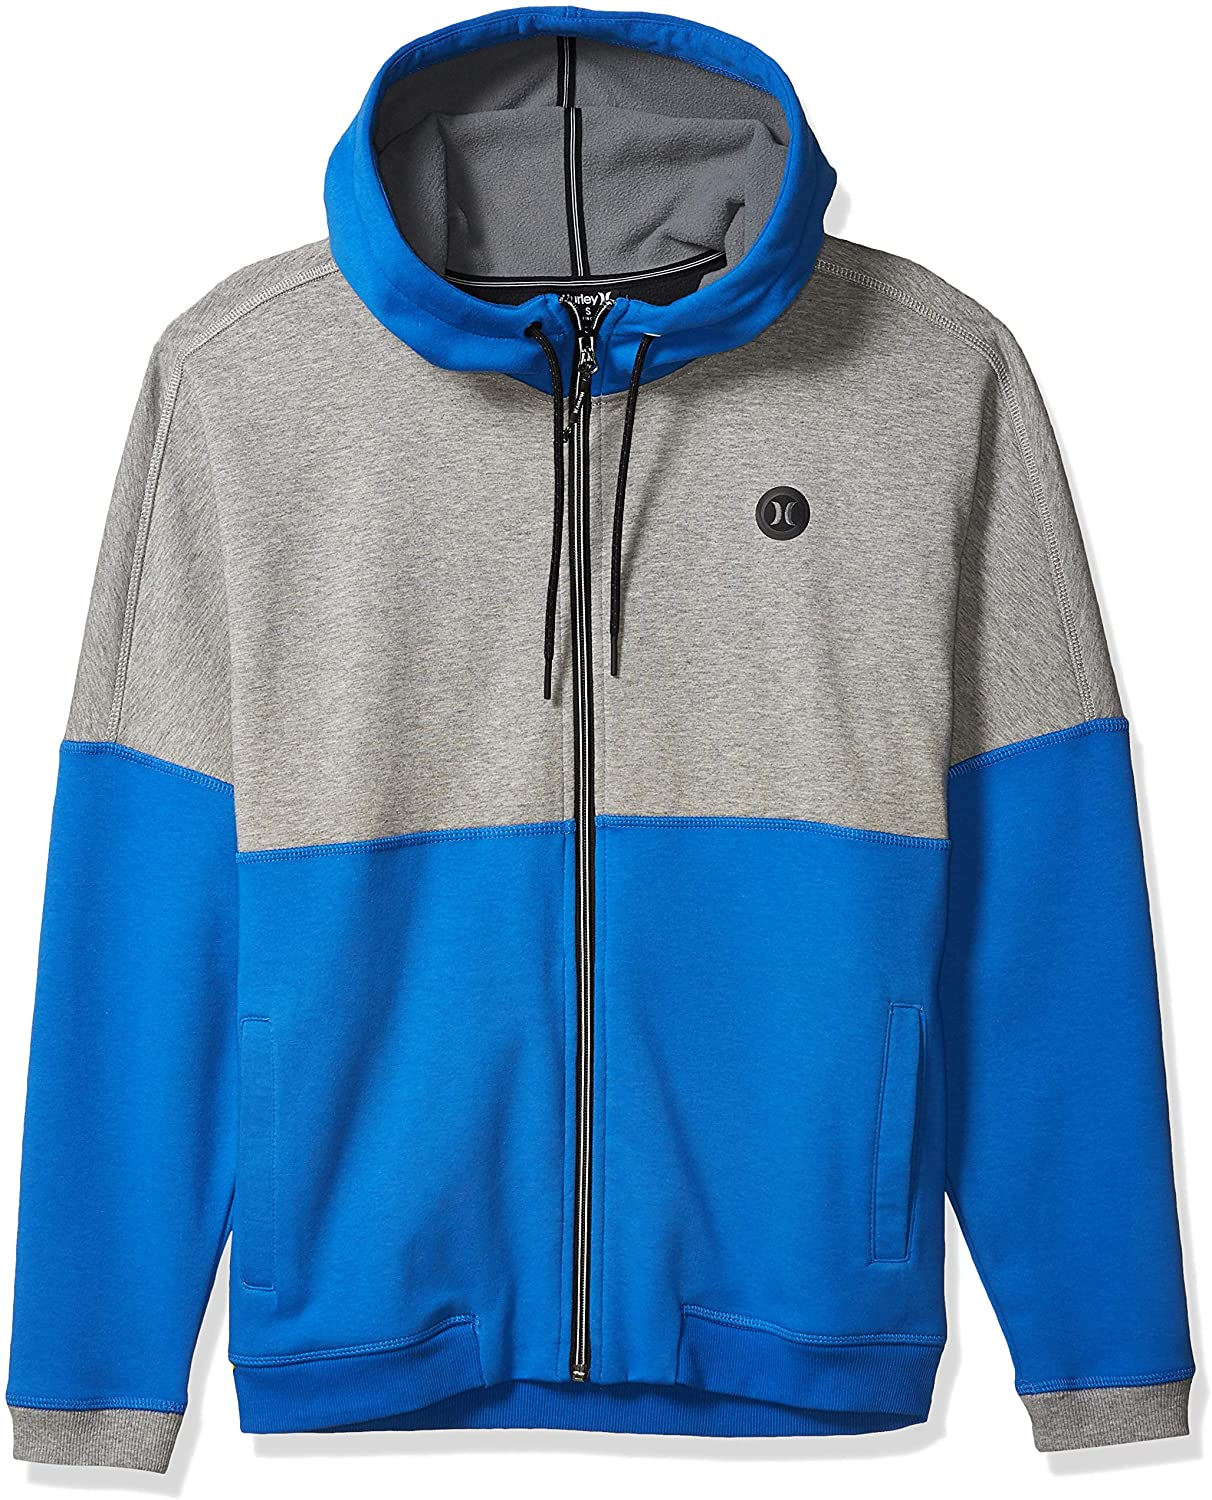 Hurley Therma Protect Blocked Hoody